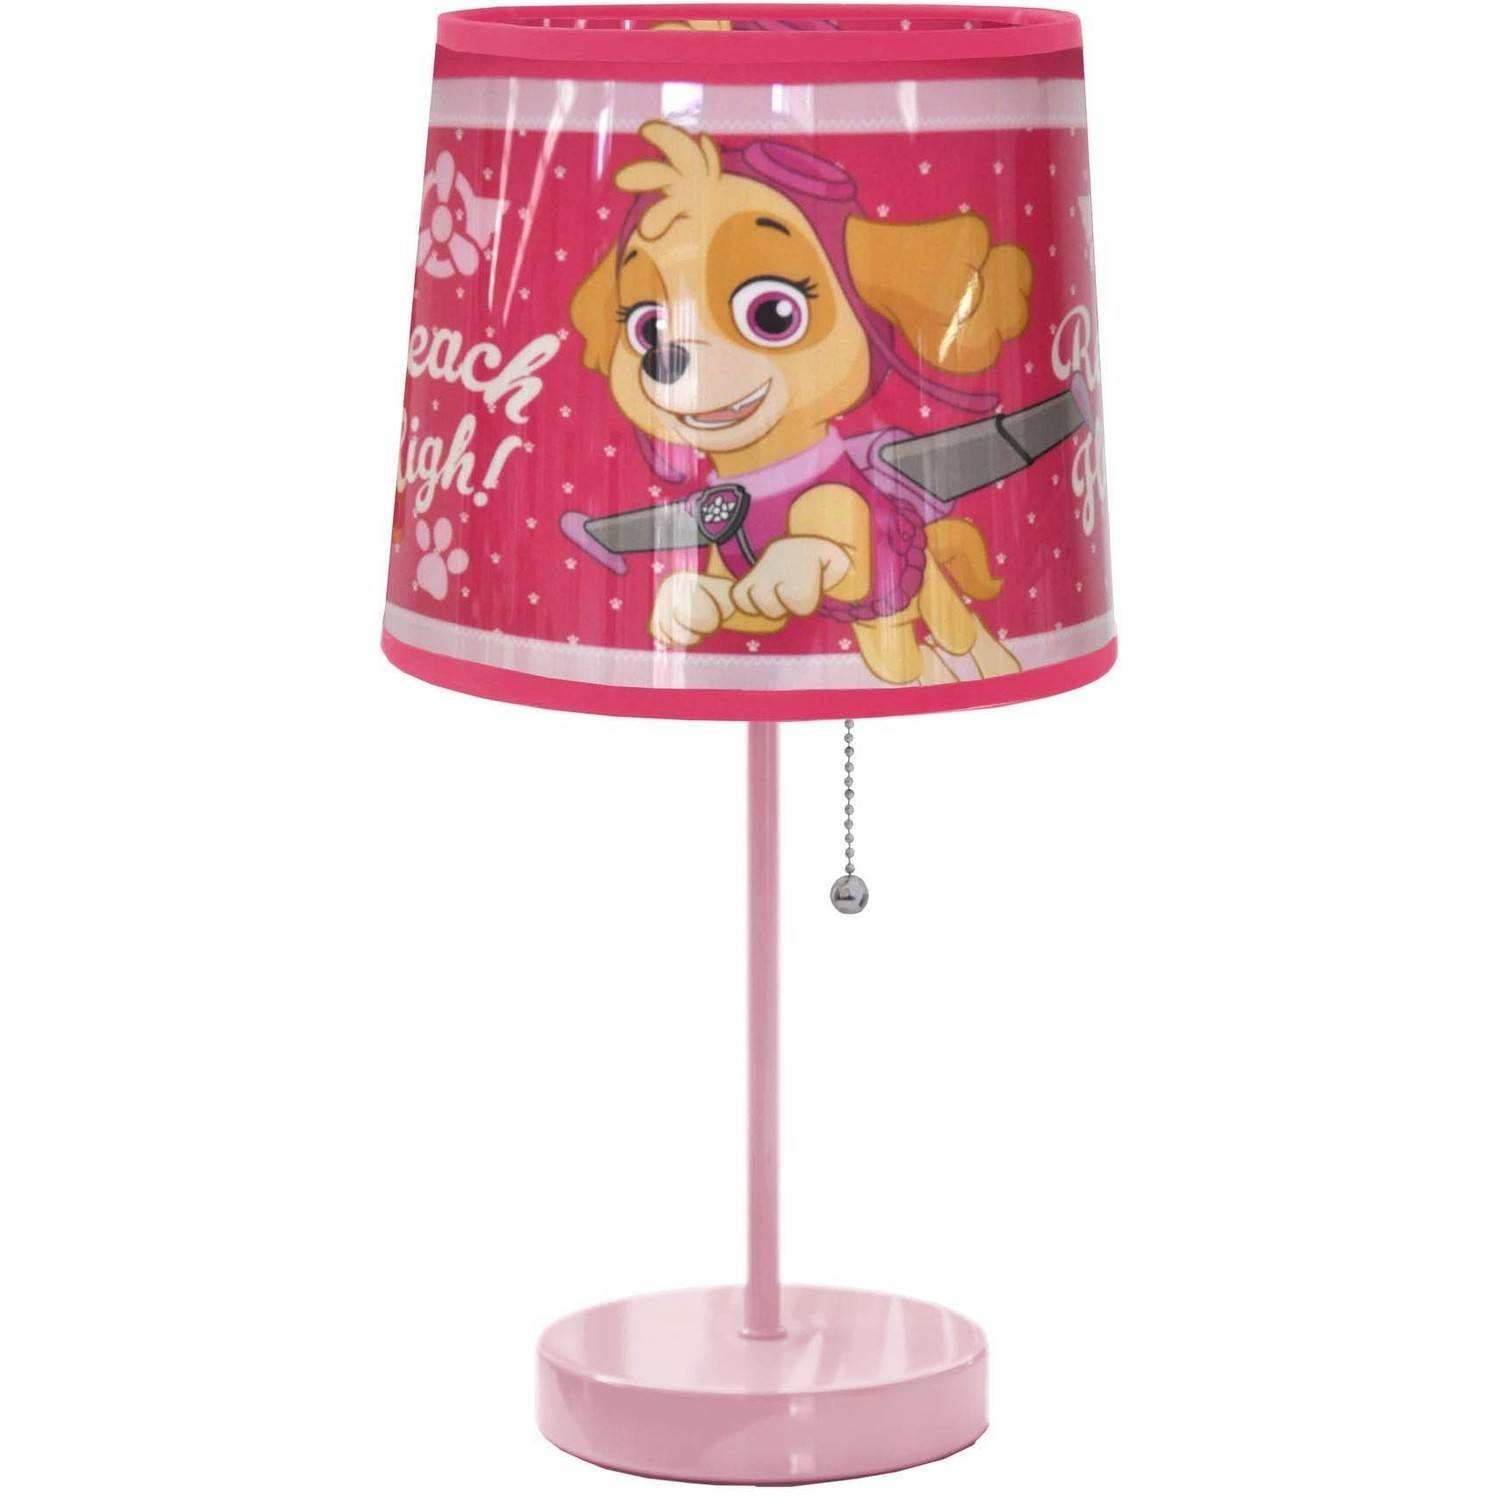 Skye Everest Paw Patrol Nursery Night Light Table Lamp Touch Lamp Switch Lamp